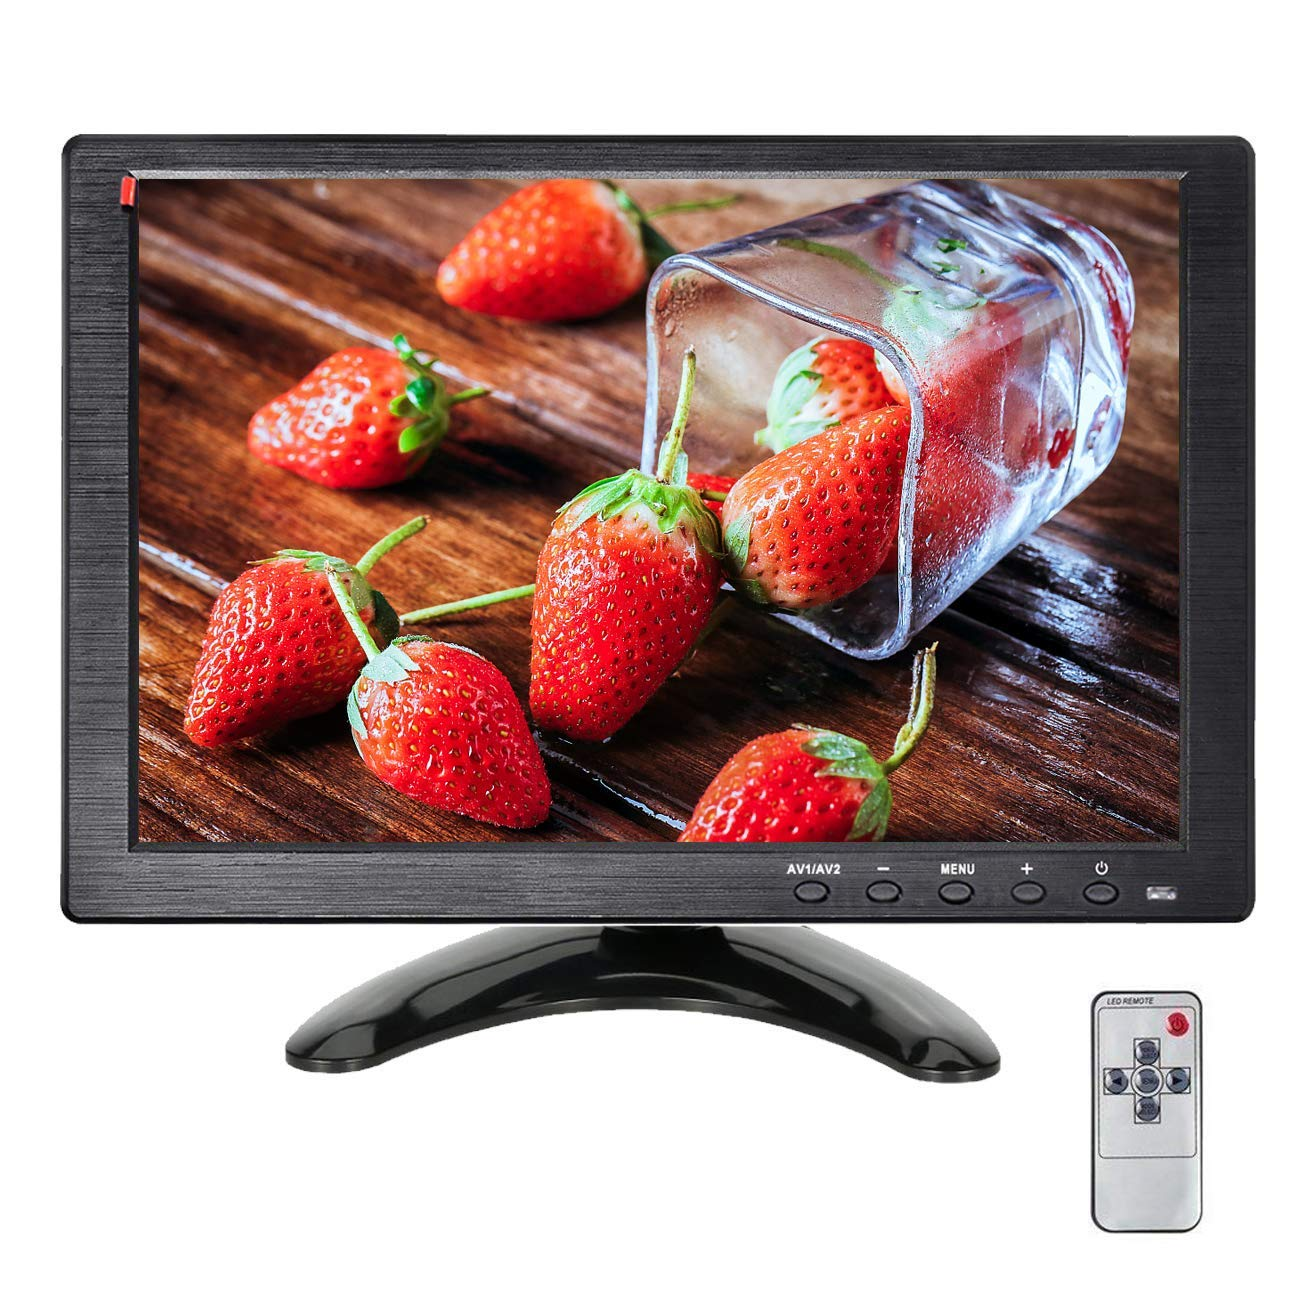 10.1Inch Portable Security Monitors HDMI Displays YUZES 1024 x 600 Resolution TFT LCD Video Screen with VAG AV USB BNC Input Remote Controller for PC Mini Small TV Camera Laptop IPS Cheap Monitor